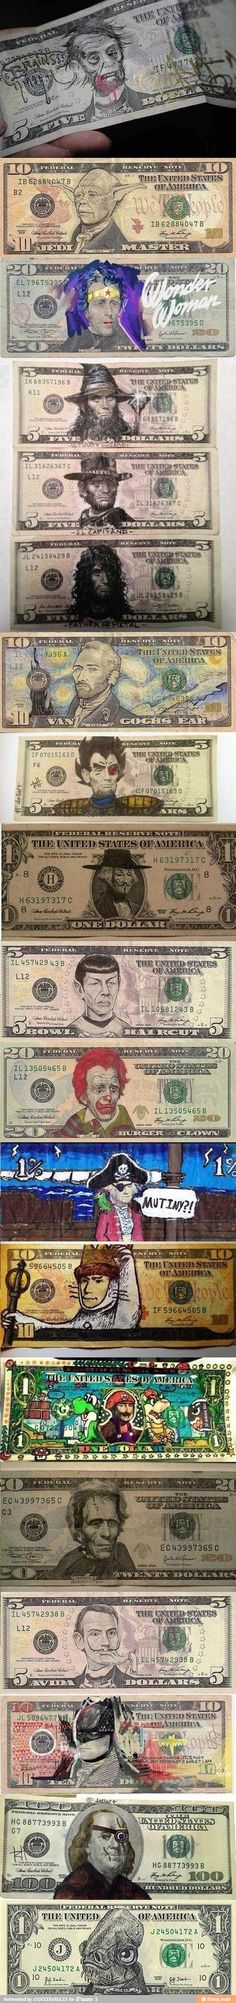 "Funny Money - these are funny, but I was like ""how they gonna mess with our man, A. Hamm?"" But he's Van Gogh, Max from WTWTA, and Batman. Yeah, I'm cool with that."